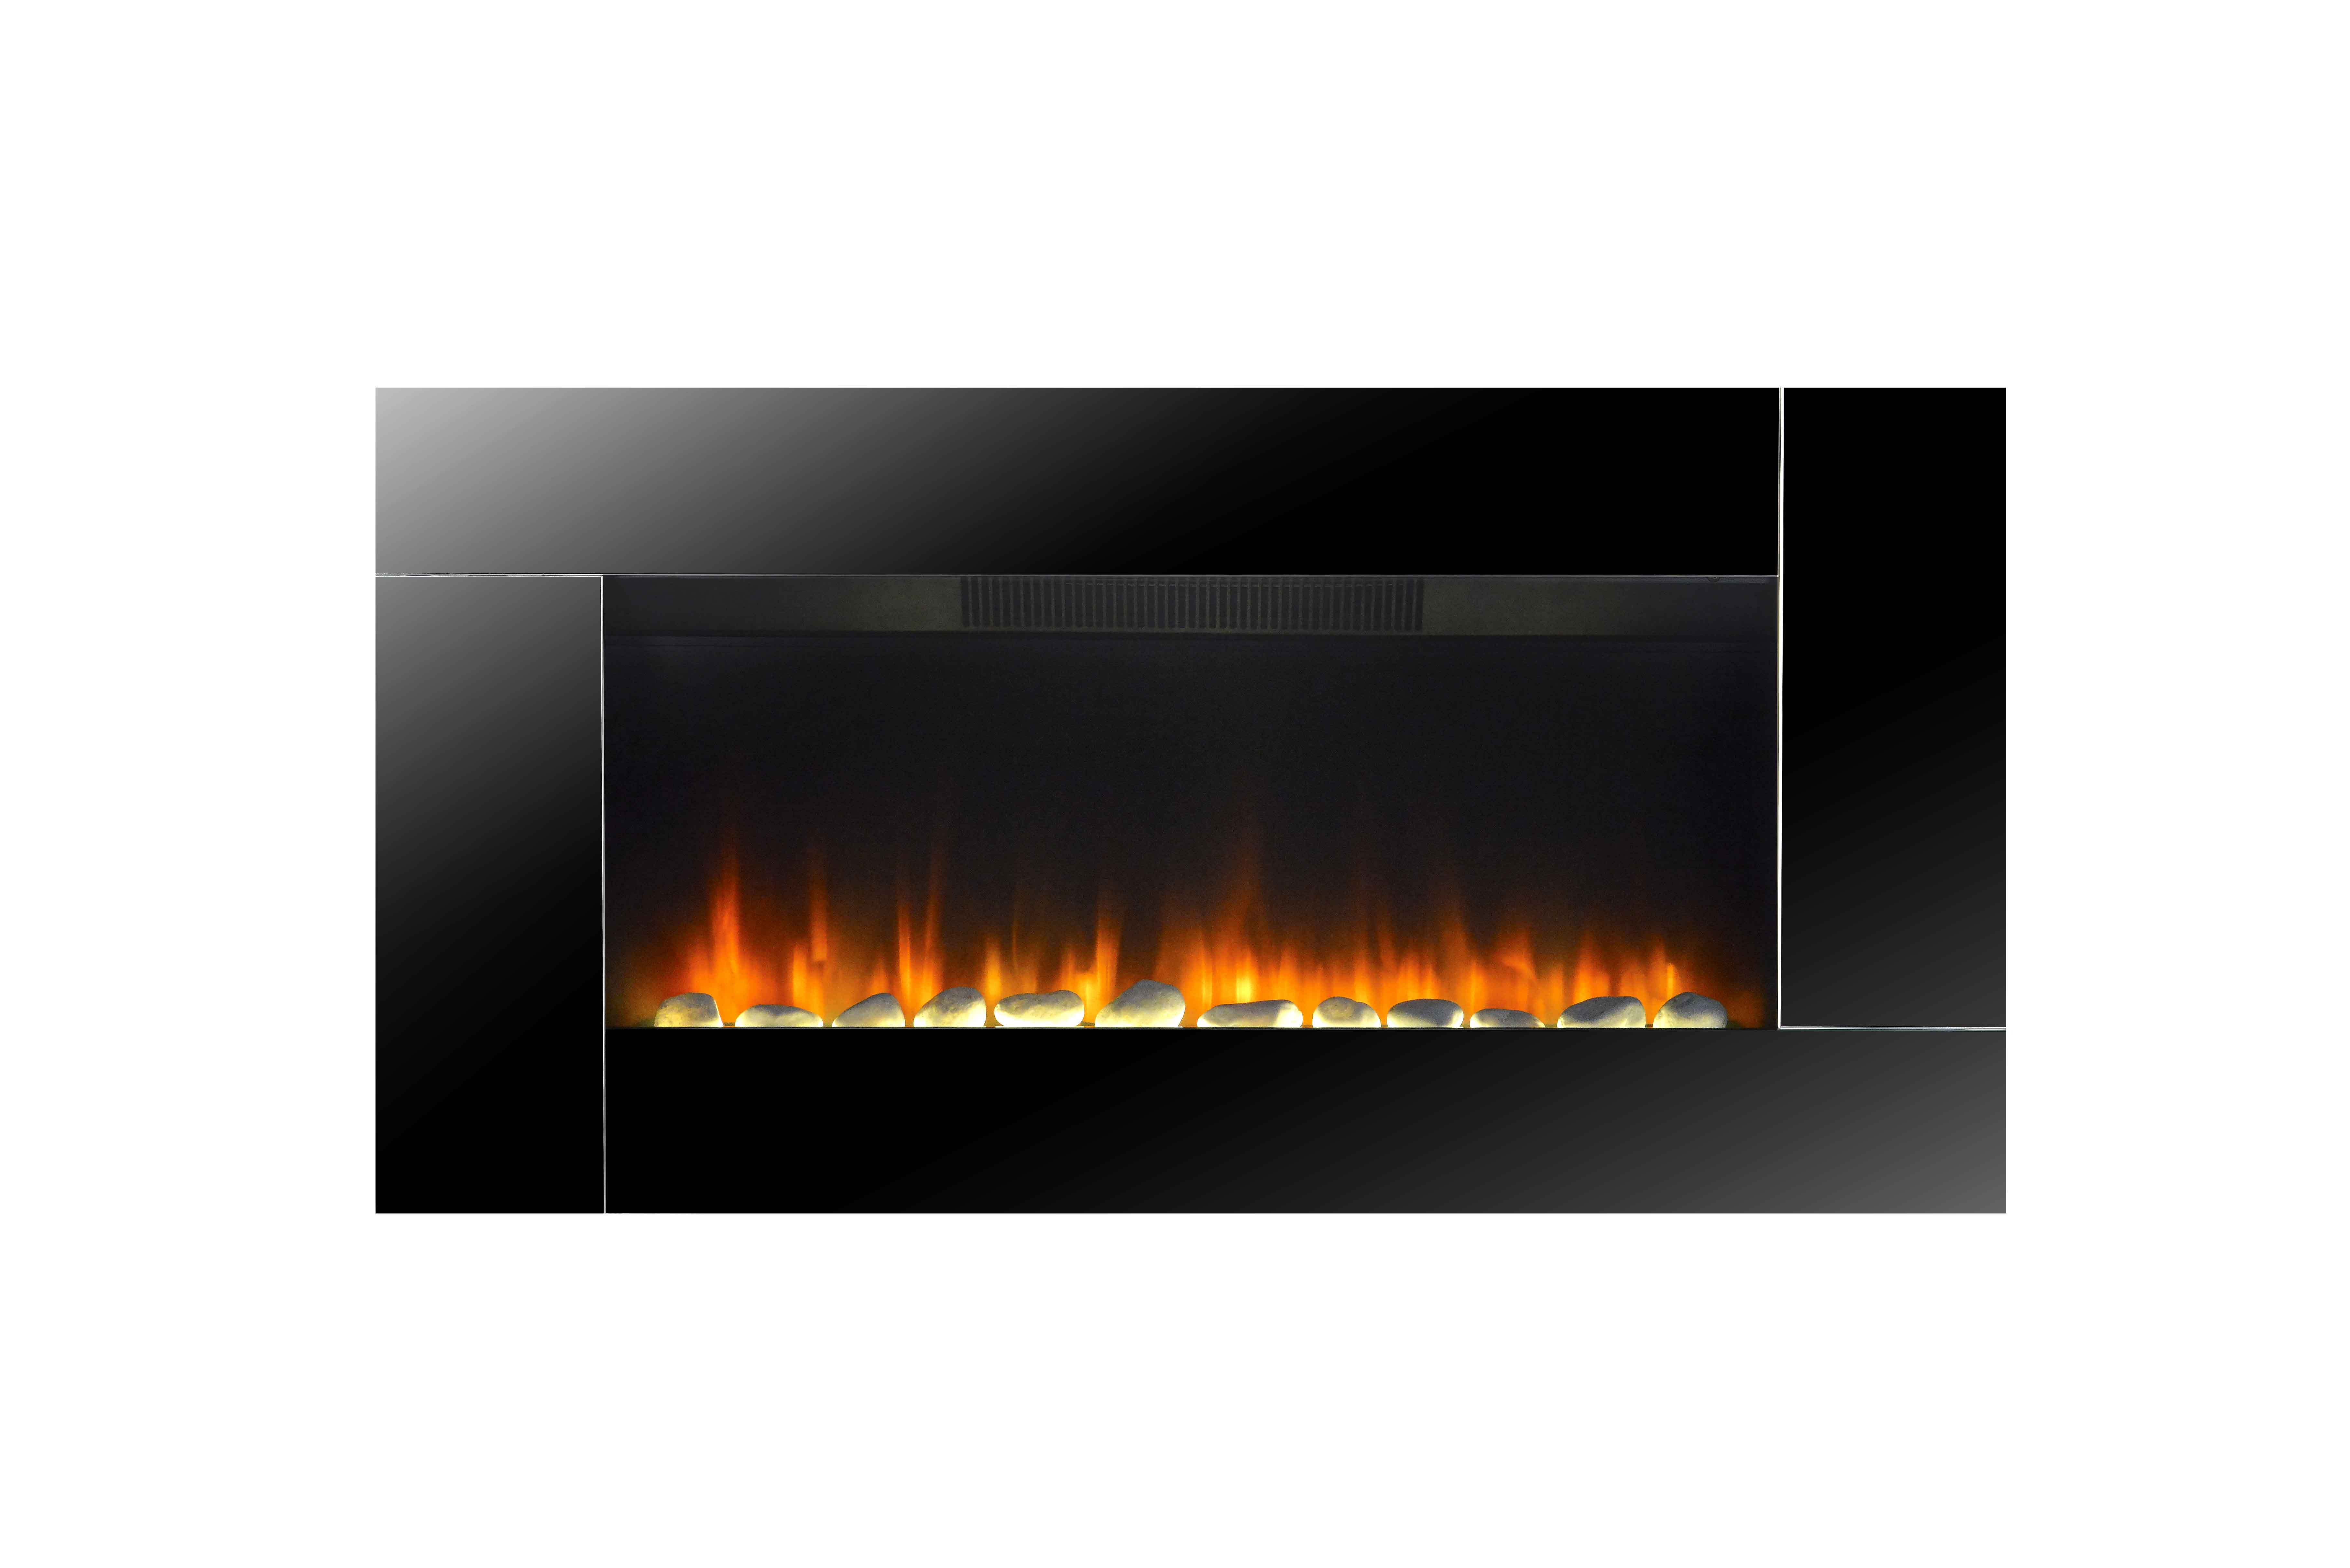 Wall Mounted Electric Fire Place with mirror LJHF3702E